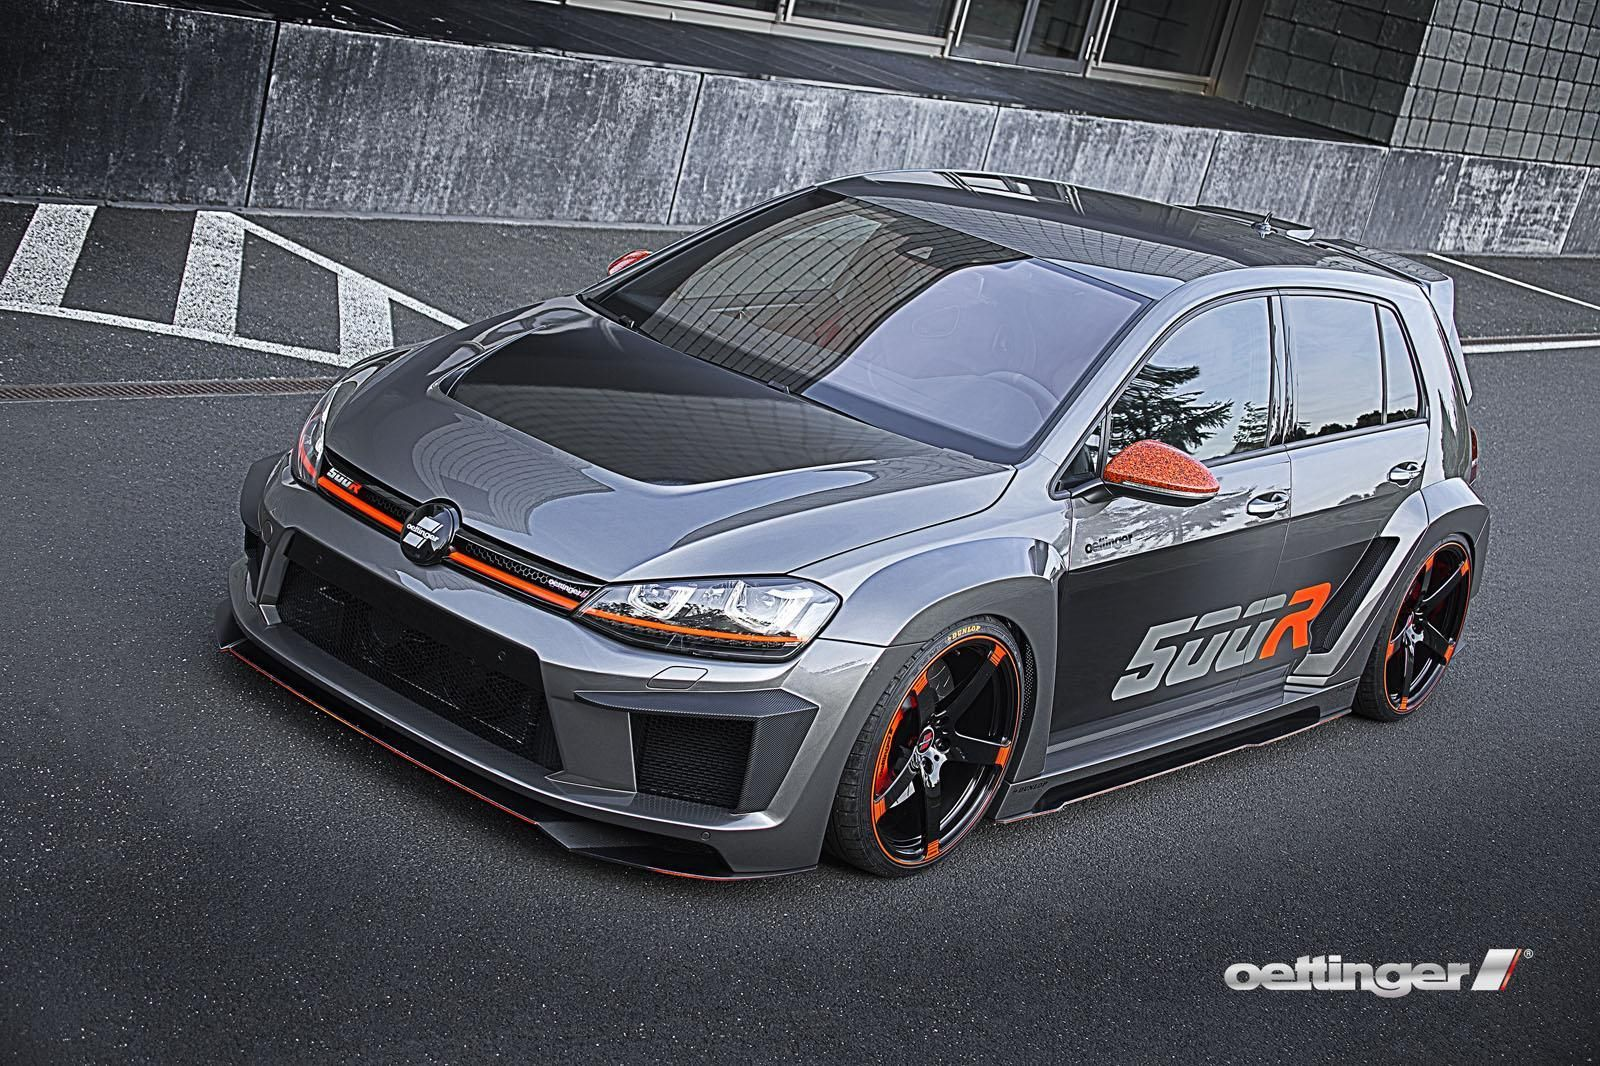 rally body kit for volkswagen Golf - Google Search   Tuner